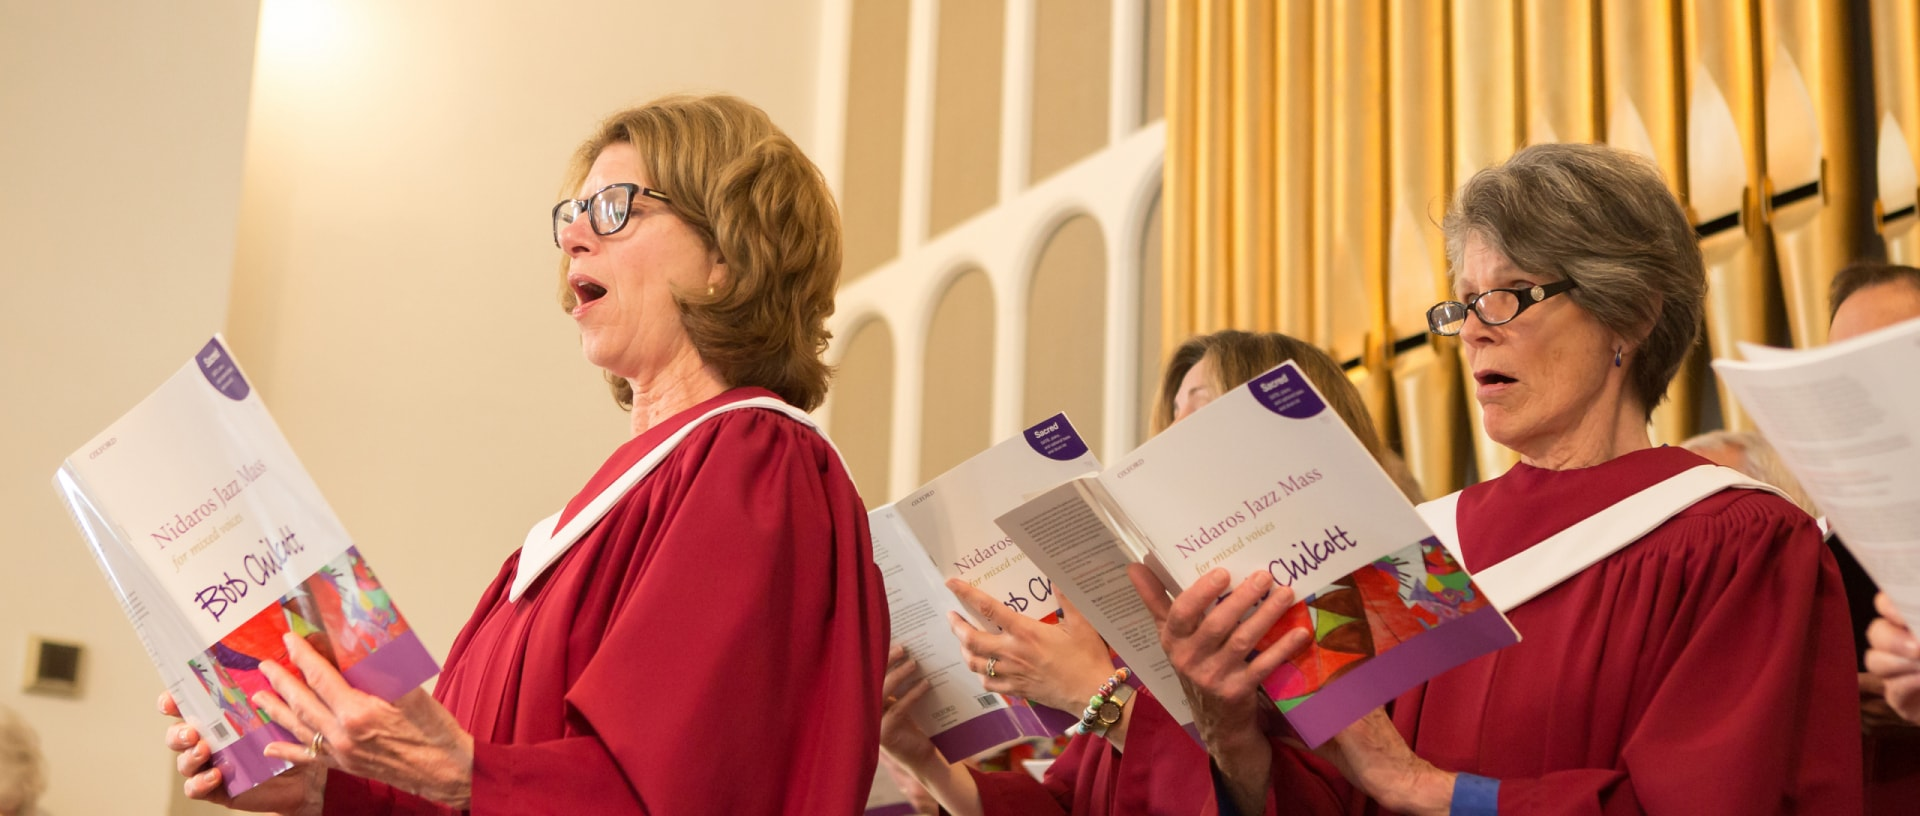 Two women sing the Nidaros Jazz Mass by Bob Chilcott from the organ loft. Organ pipes are visible in the background.